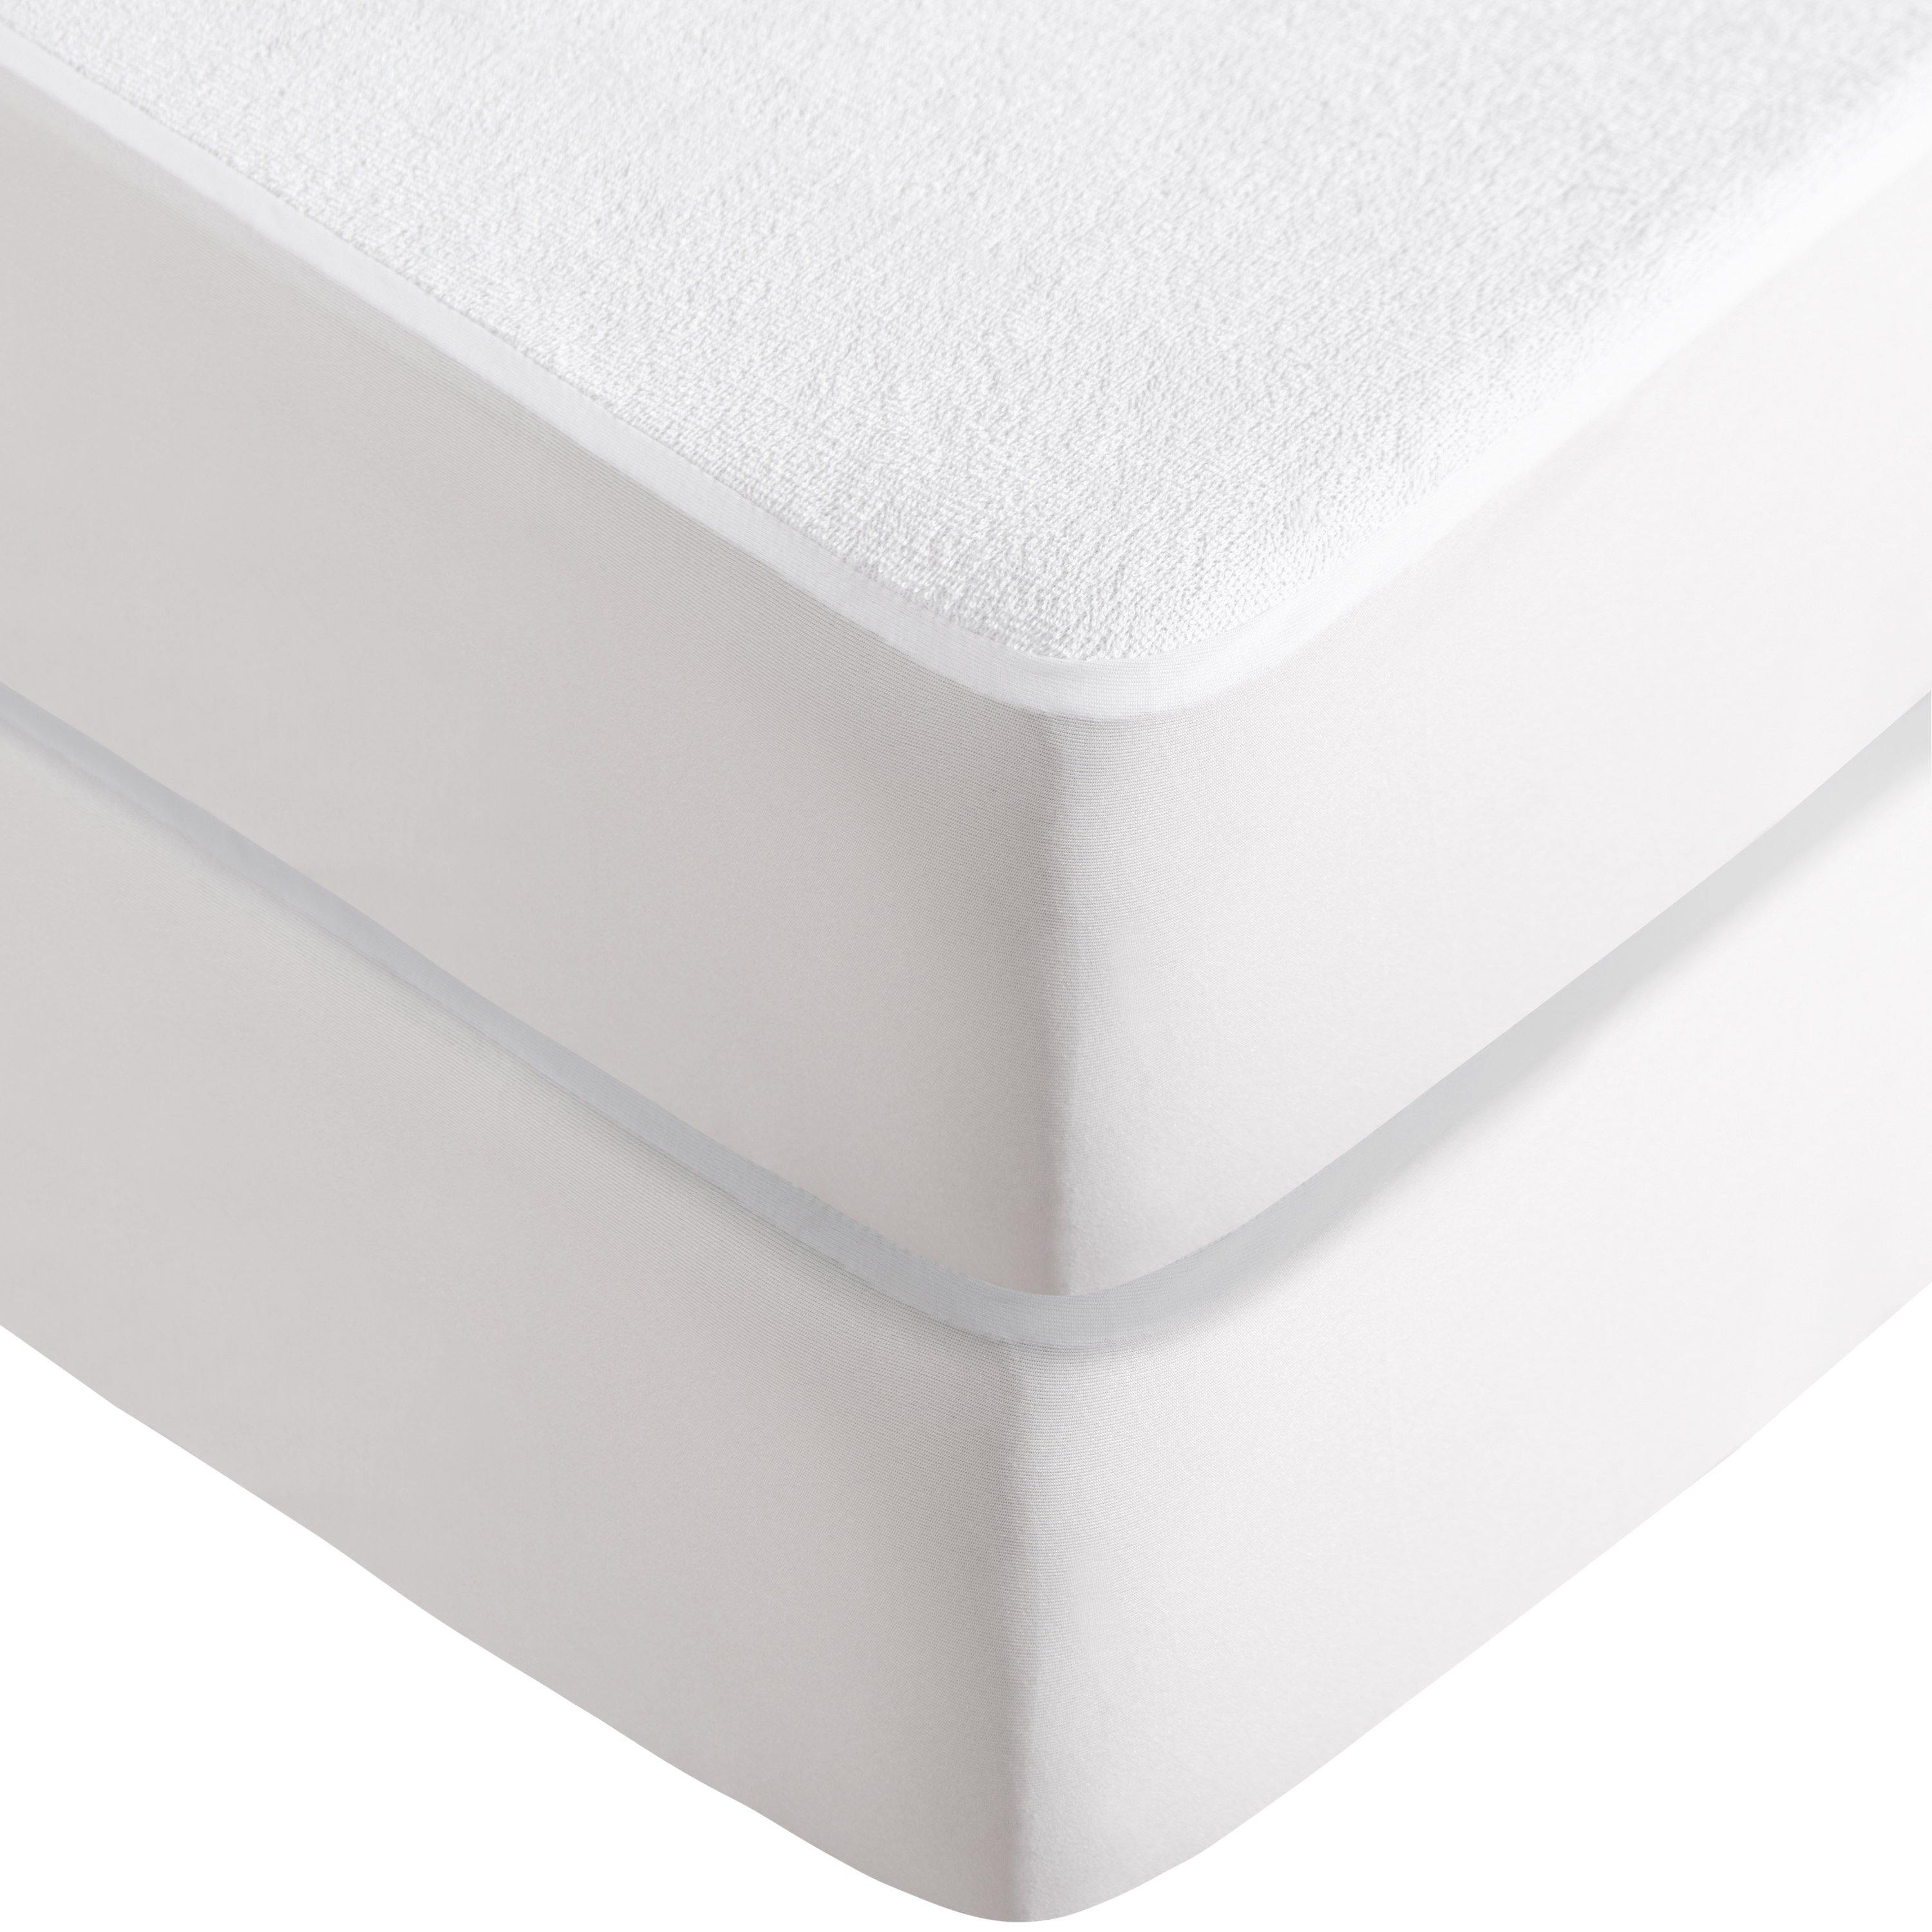 Luxury Fitted WATERPROOF Mattress Protector Non-Allergic Breathable Made In UK